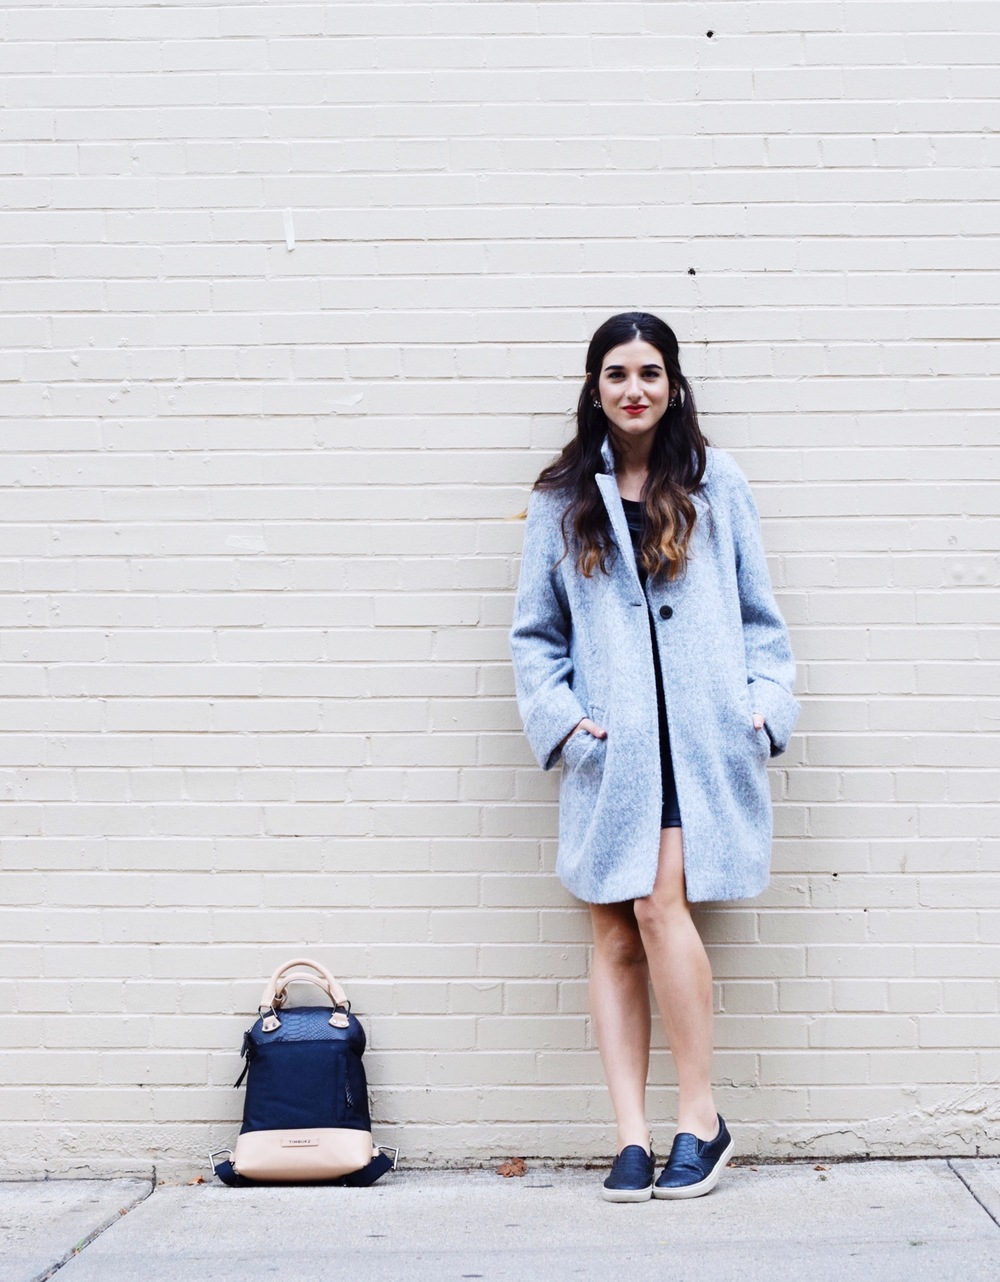 Femme Satchel Backpack Timbuk2 Louboutins & Love Fashion Blog Esther Santer Street Style Blogger NYC Outfit OOTD Girl Grey Peacoat Zara Bag Purse Sneakers Nordstrom Steve Madden Hair Brunette Inspo Coat Earrings Shopping Women Fall Winter Trendy Shoes.JPG